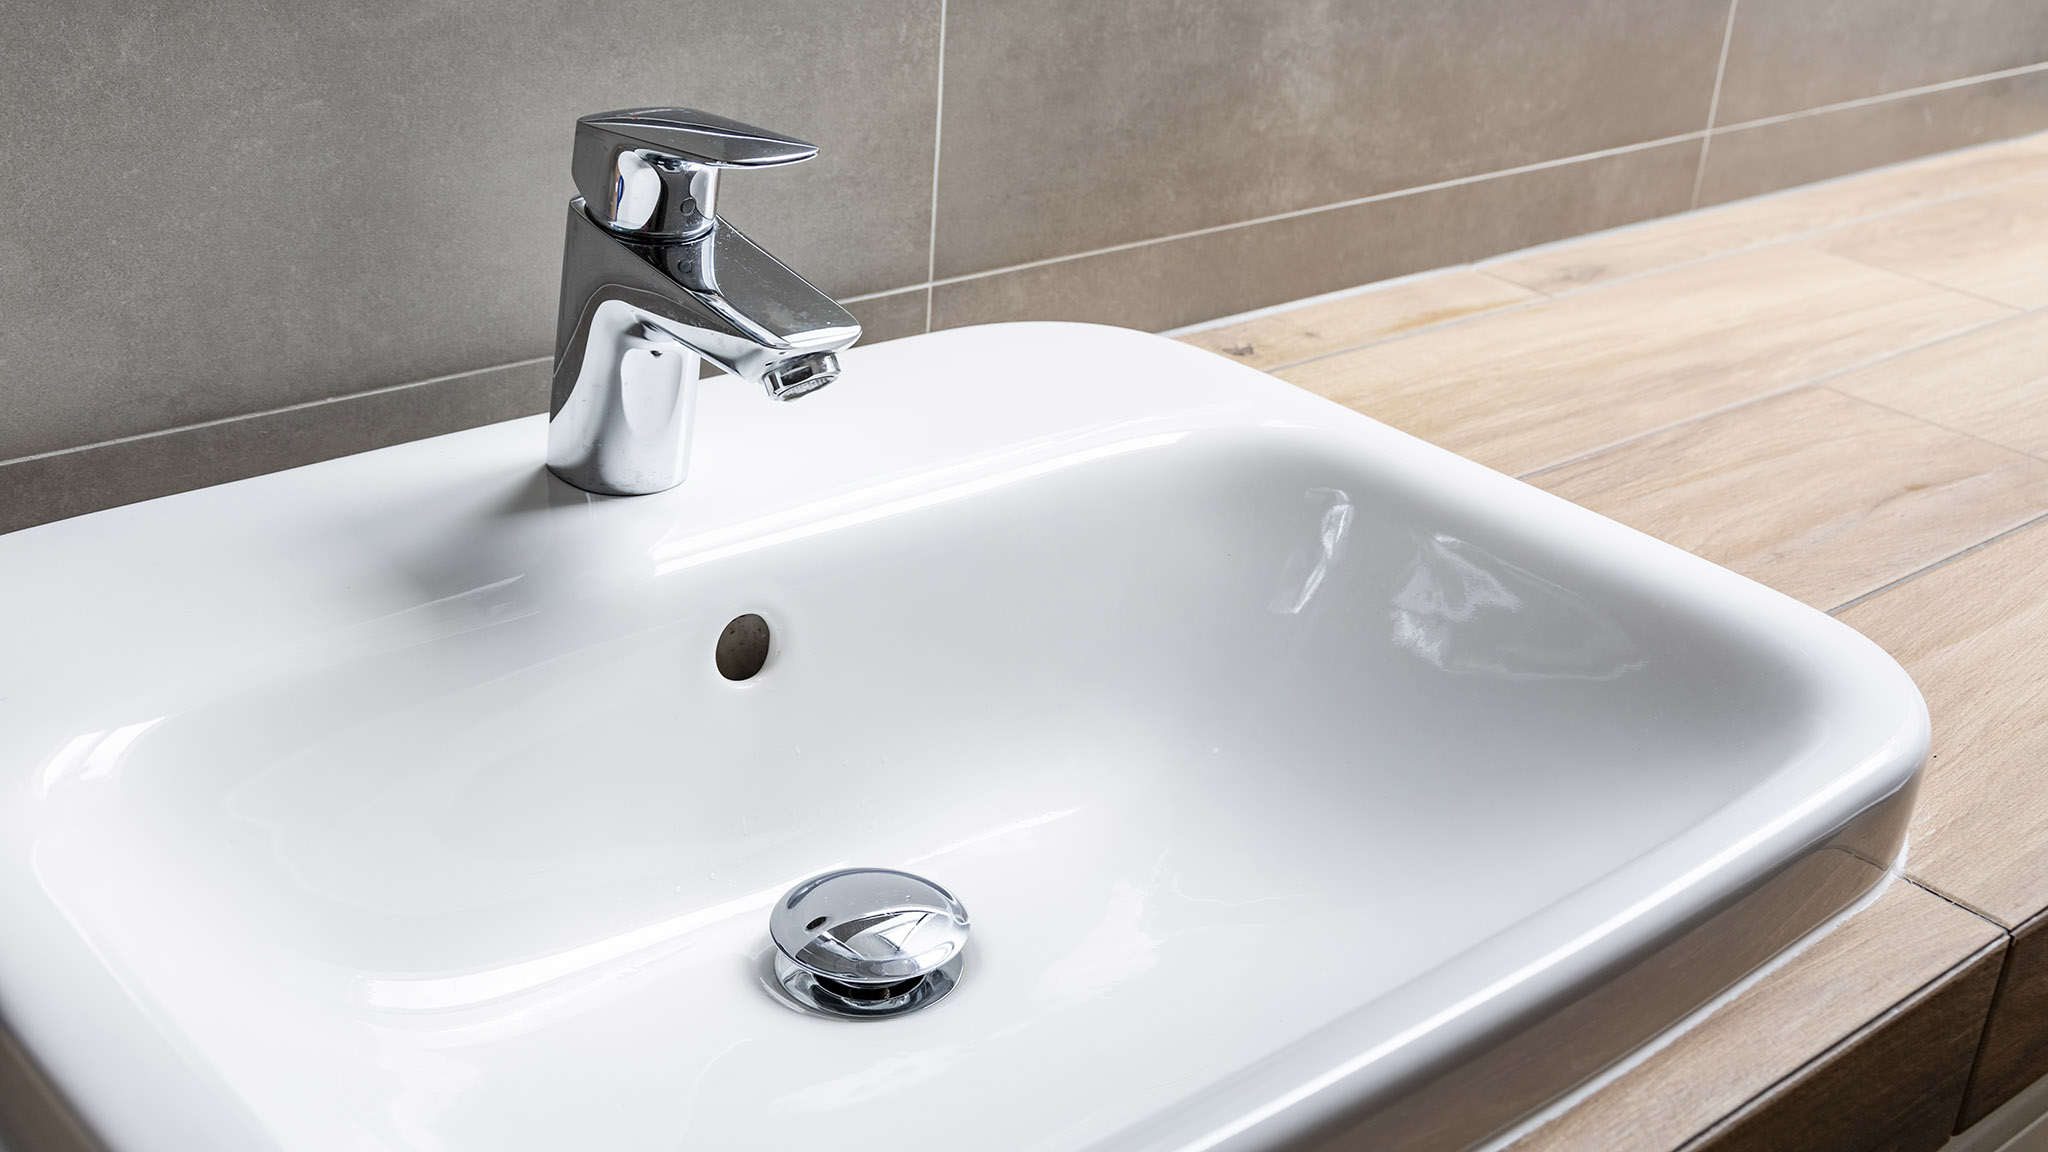 Sink and Drain Maintenance